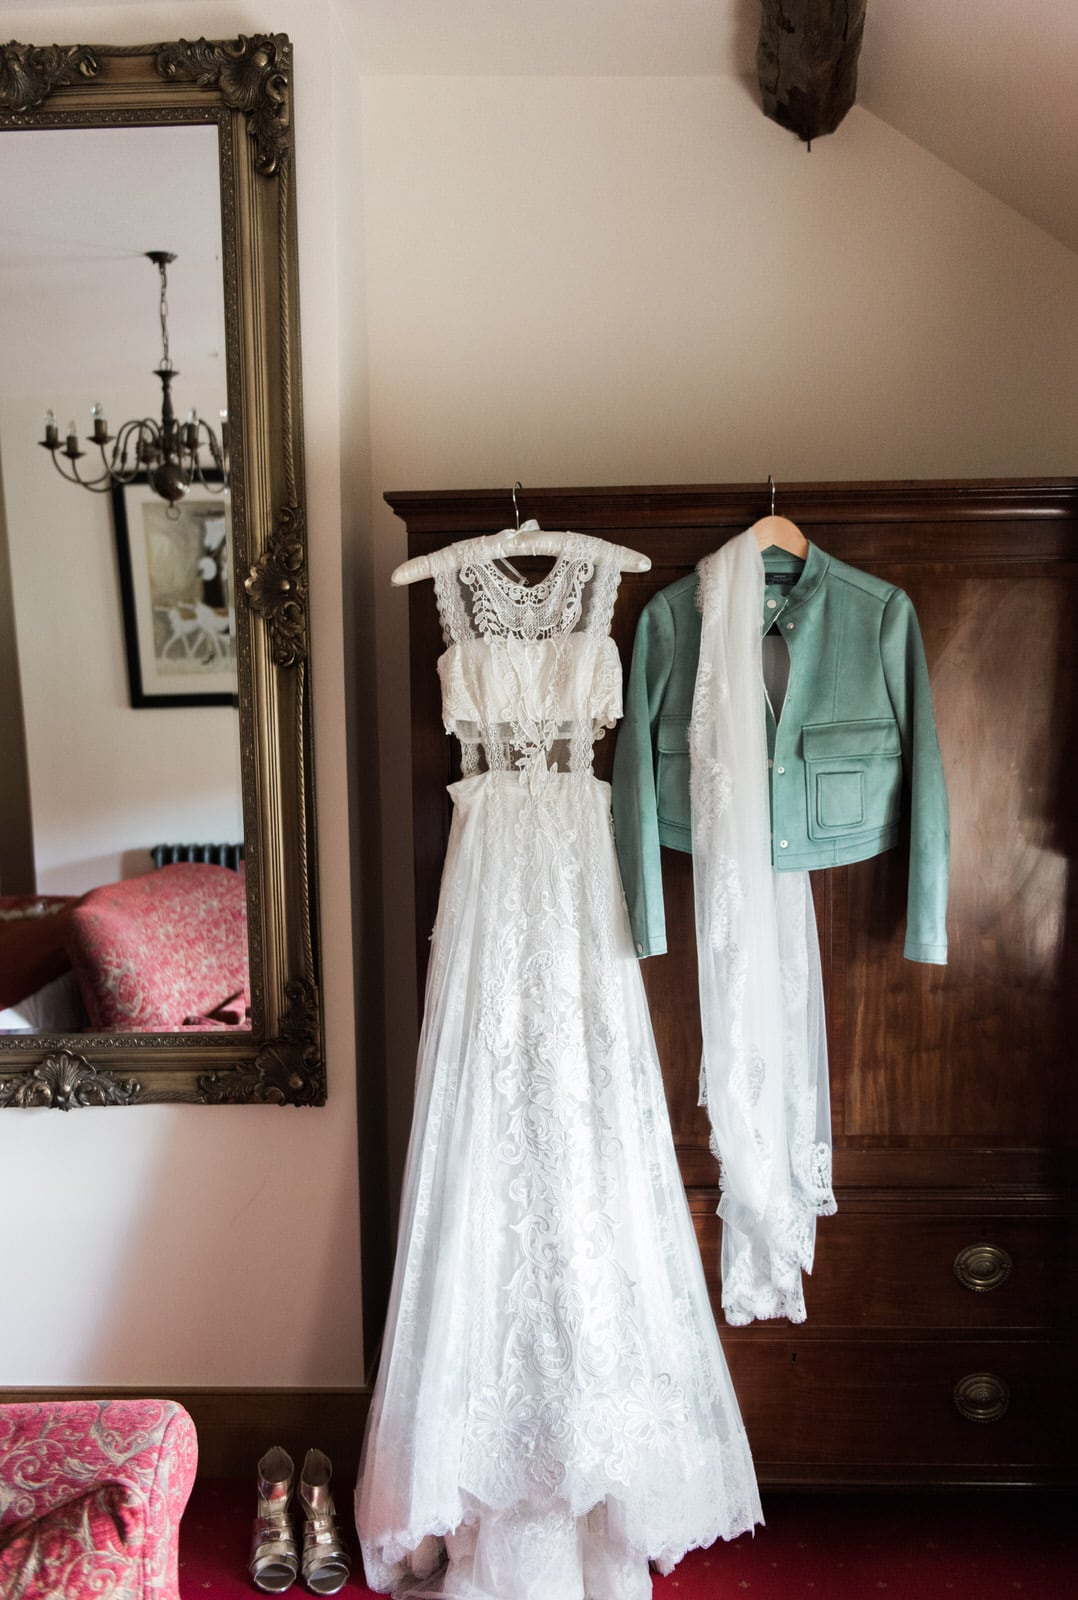 Yolan cris wedding dress hung on wardrobe